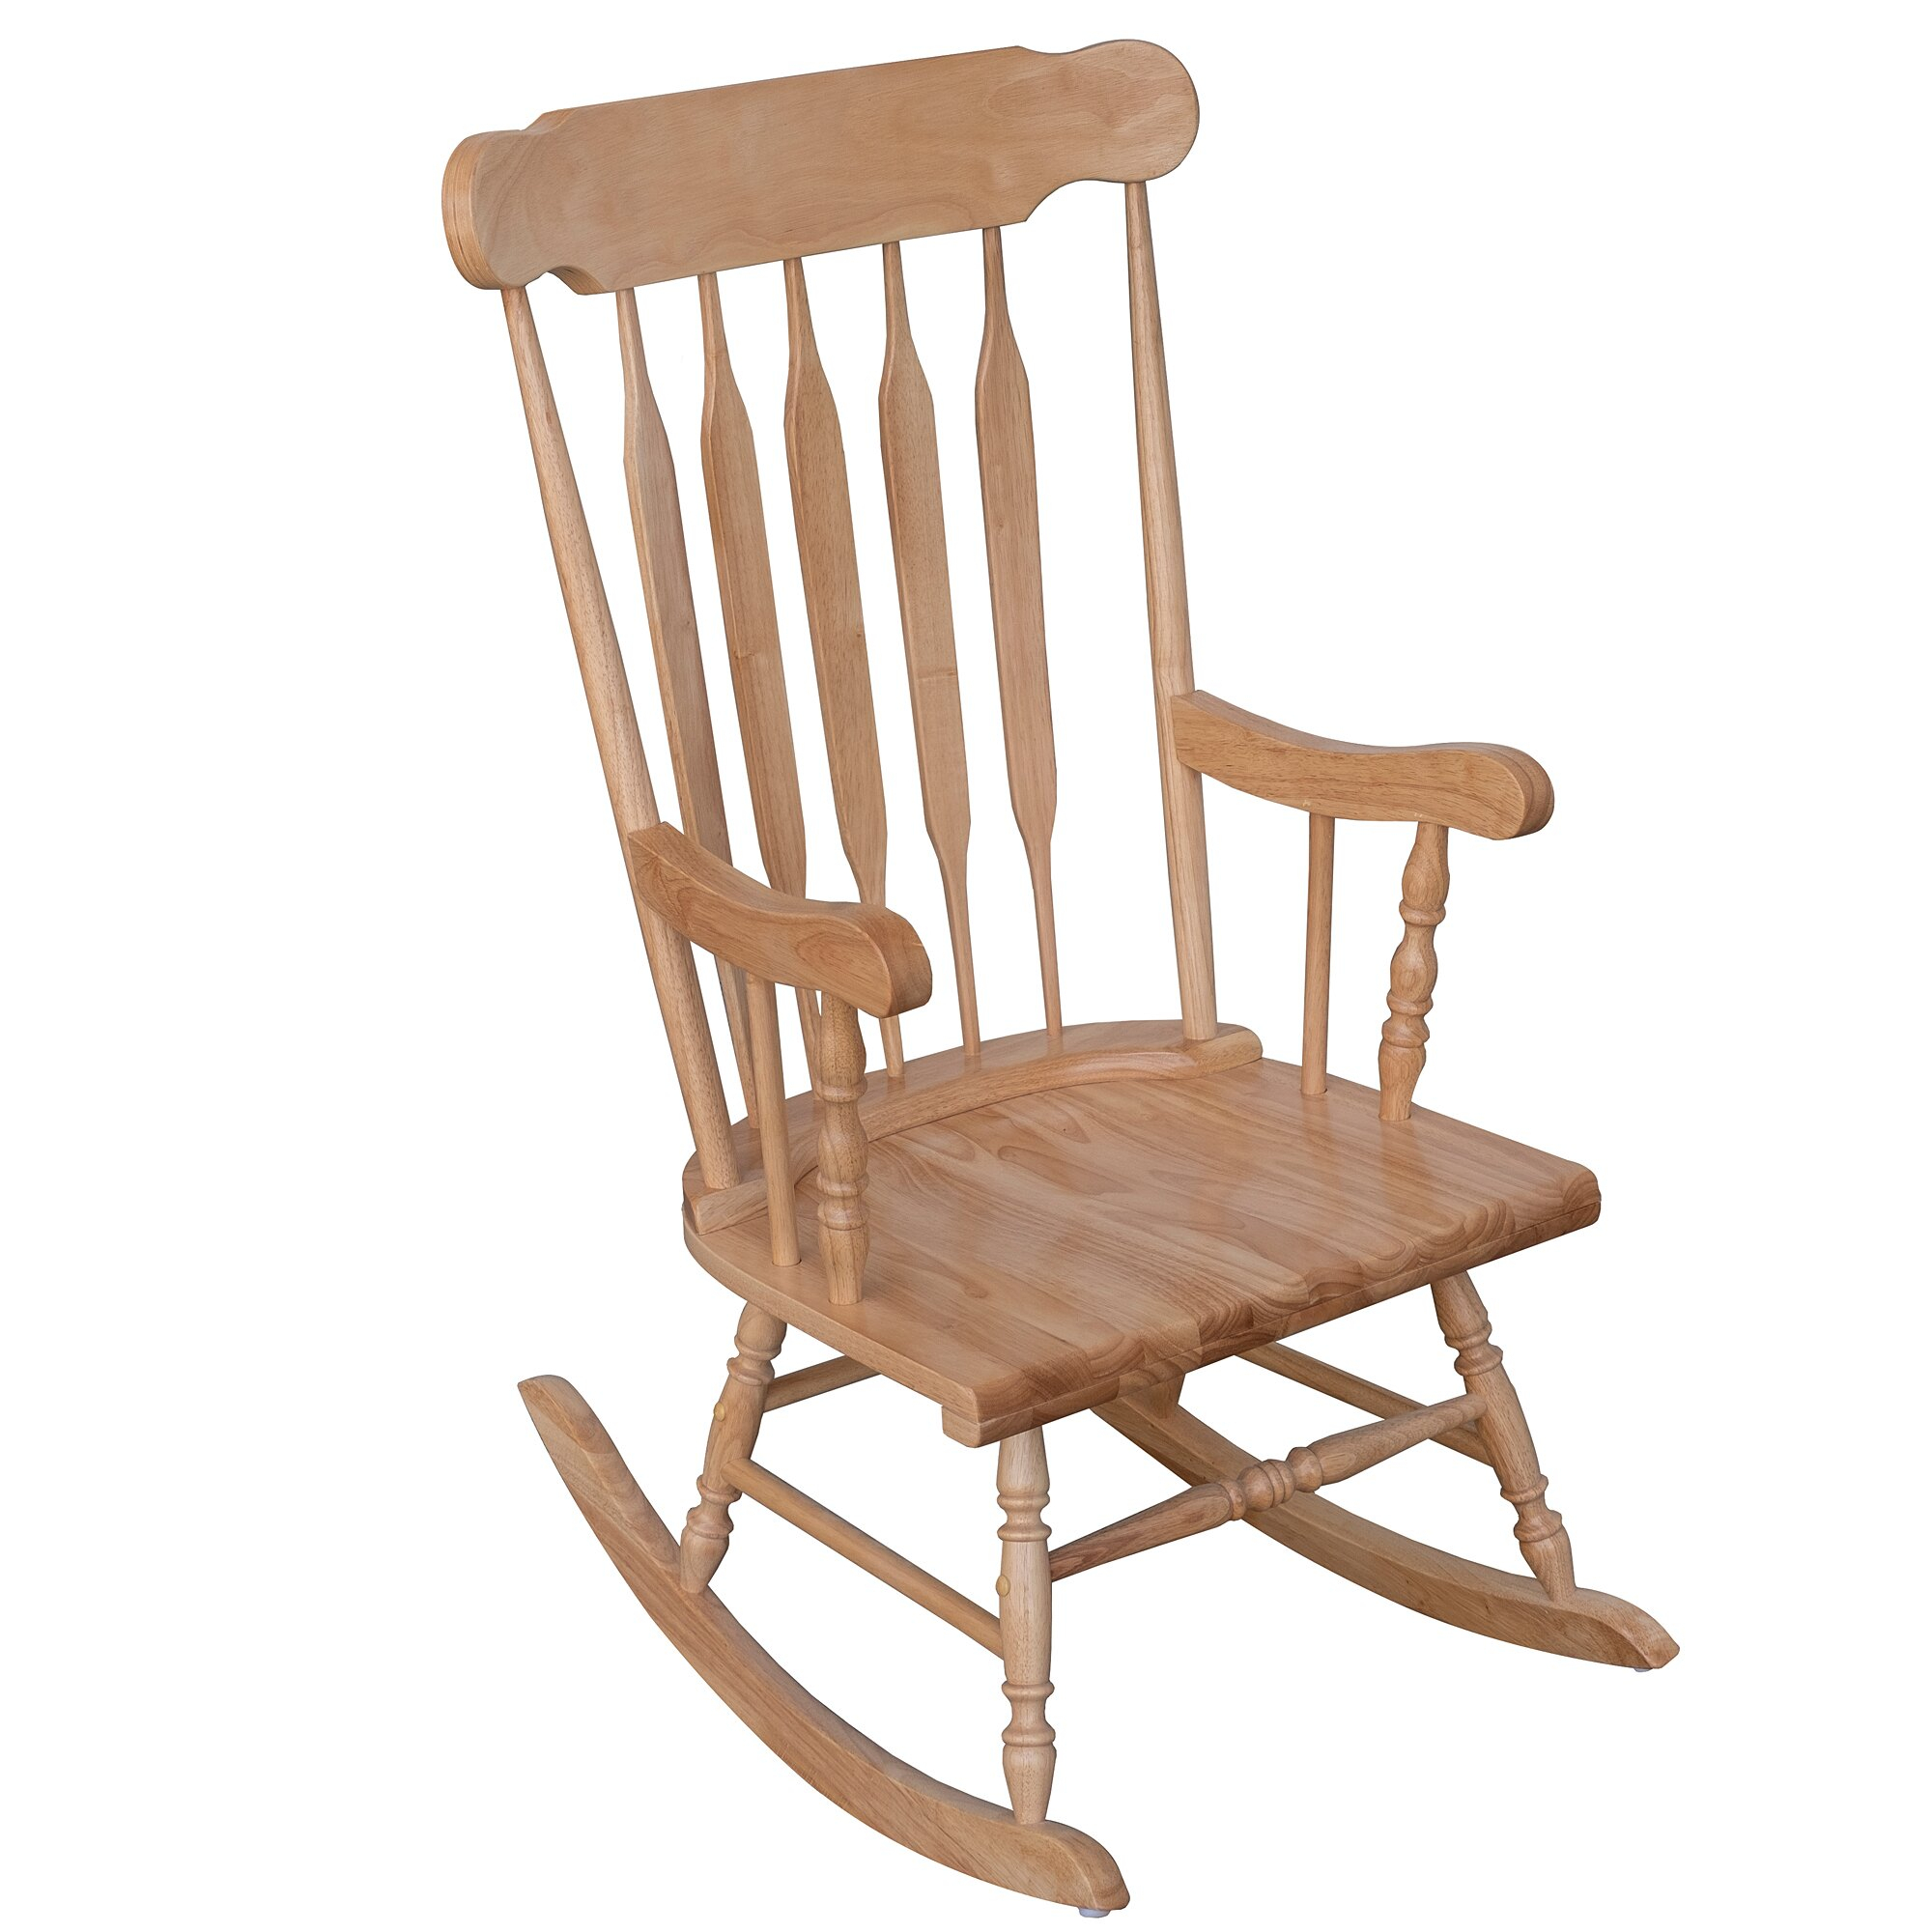 Homcom Traditional Slat Wood Rocking Chair Indoor Porch Furniture For Patio  Living Room – Natural Wood Color Pertaining To Indoor / Outdoor Porch Slat Rocking Chairs (#11 of 20)